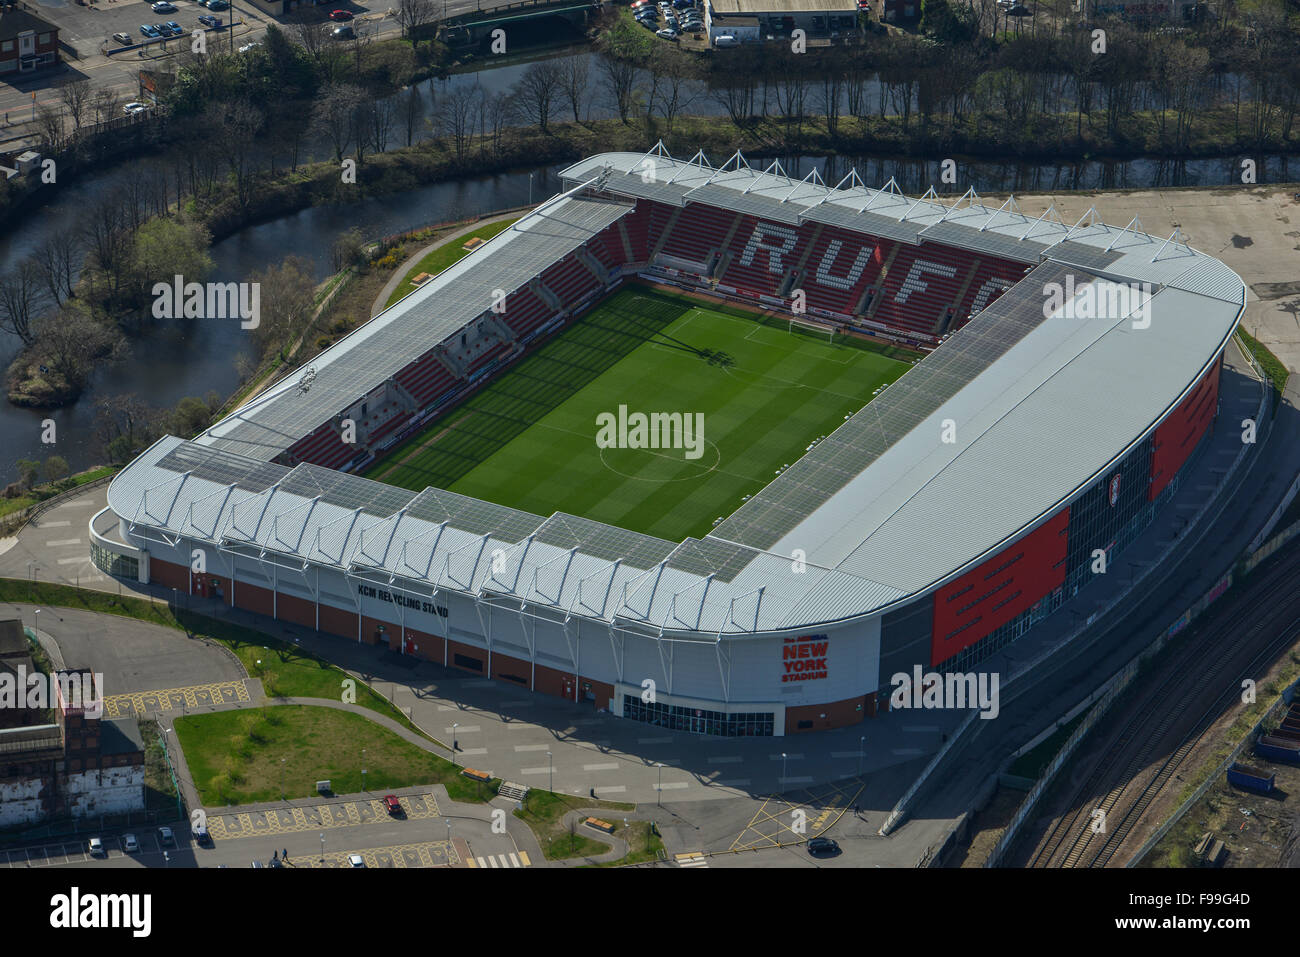 An aerial view of the New York Stadium, home of Rotherham United - Stock Image